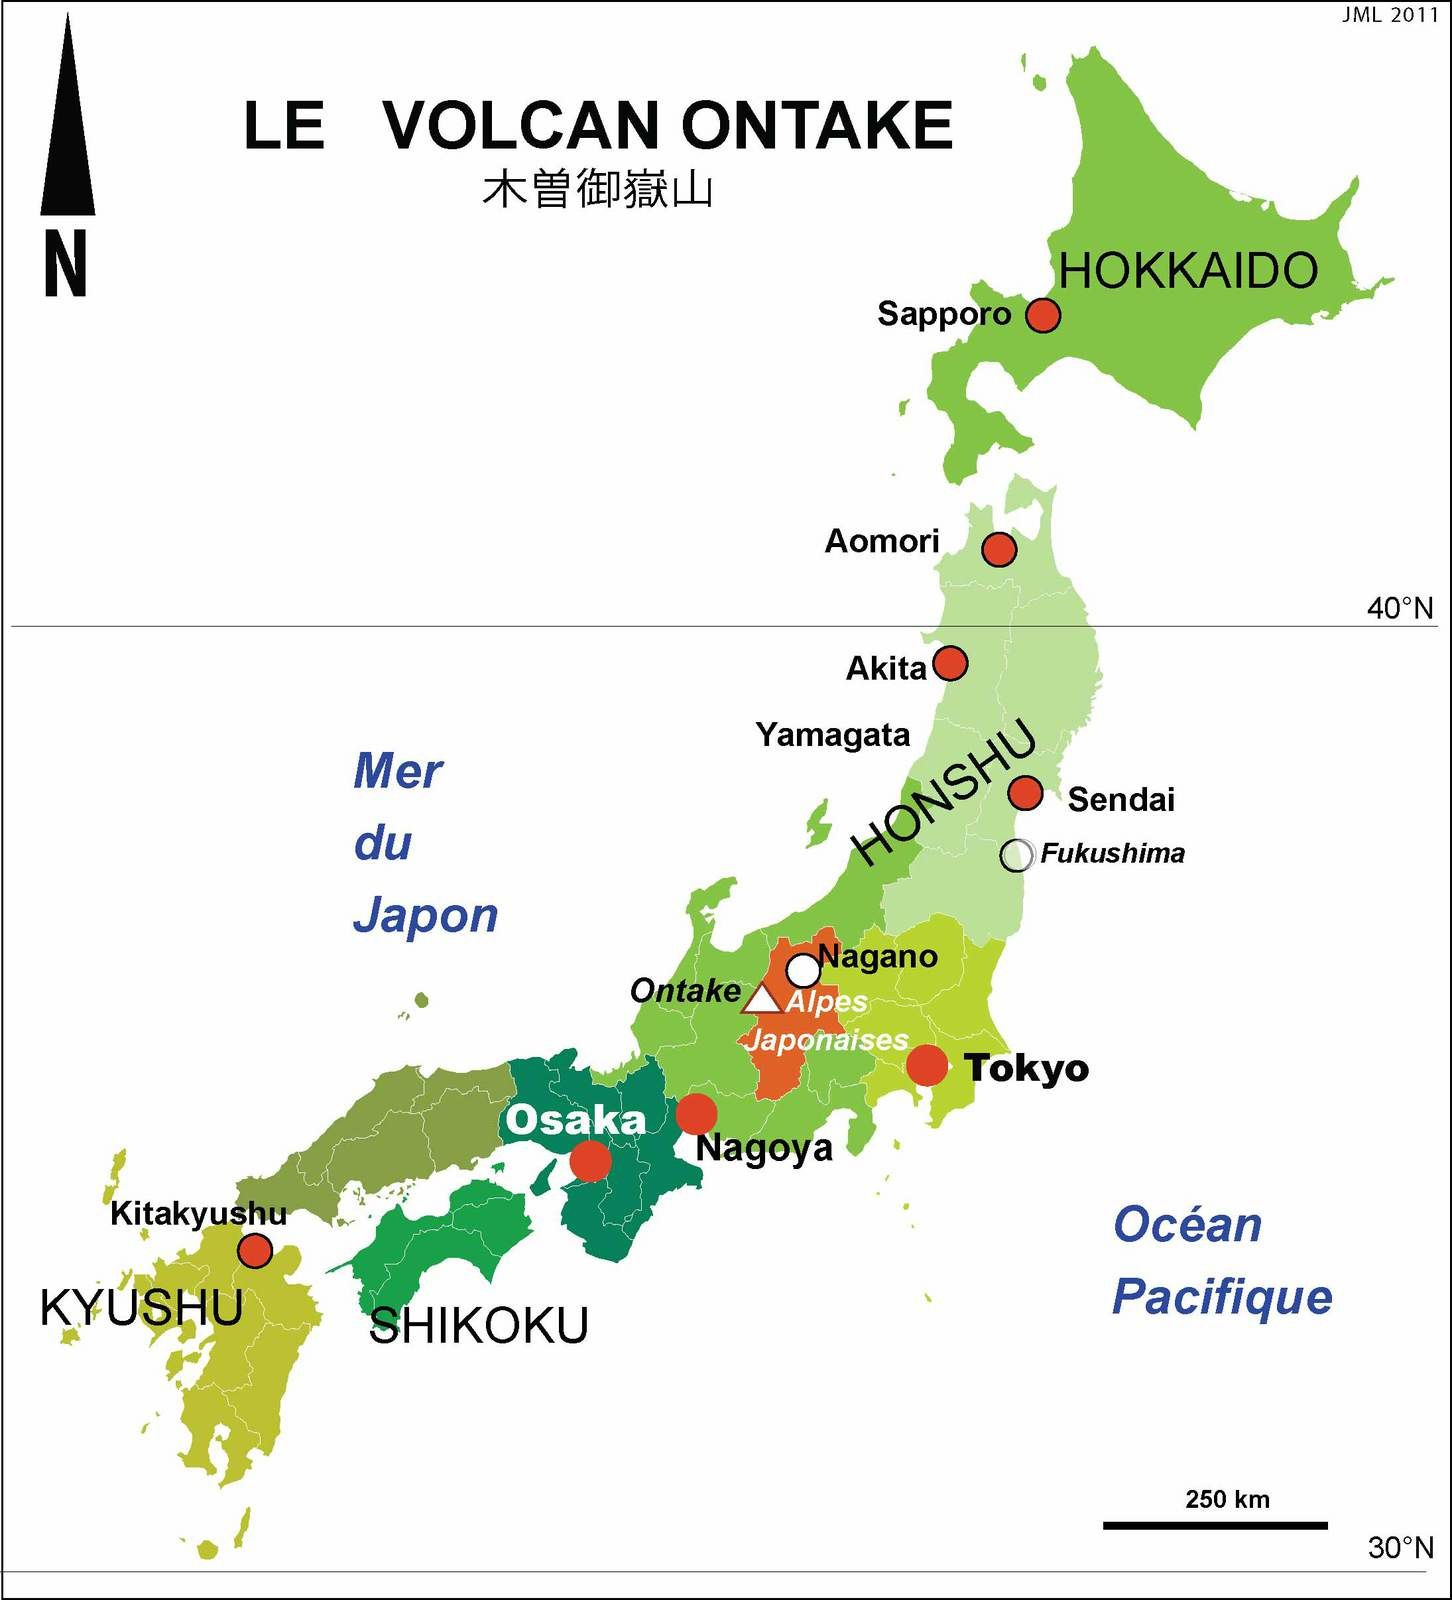 Le volcan Ontake